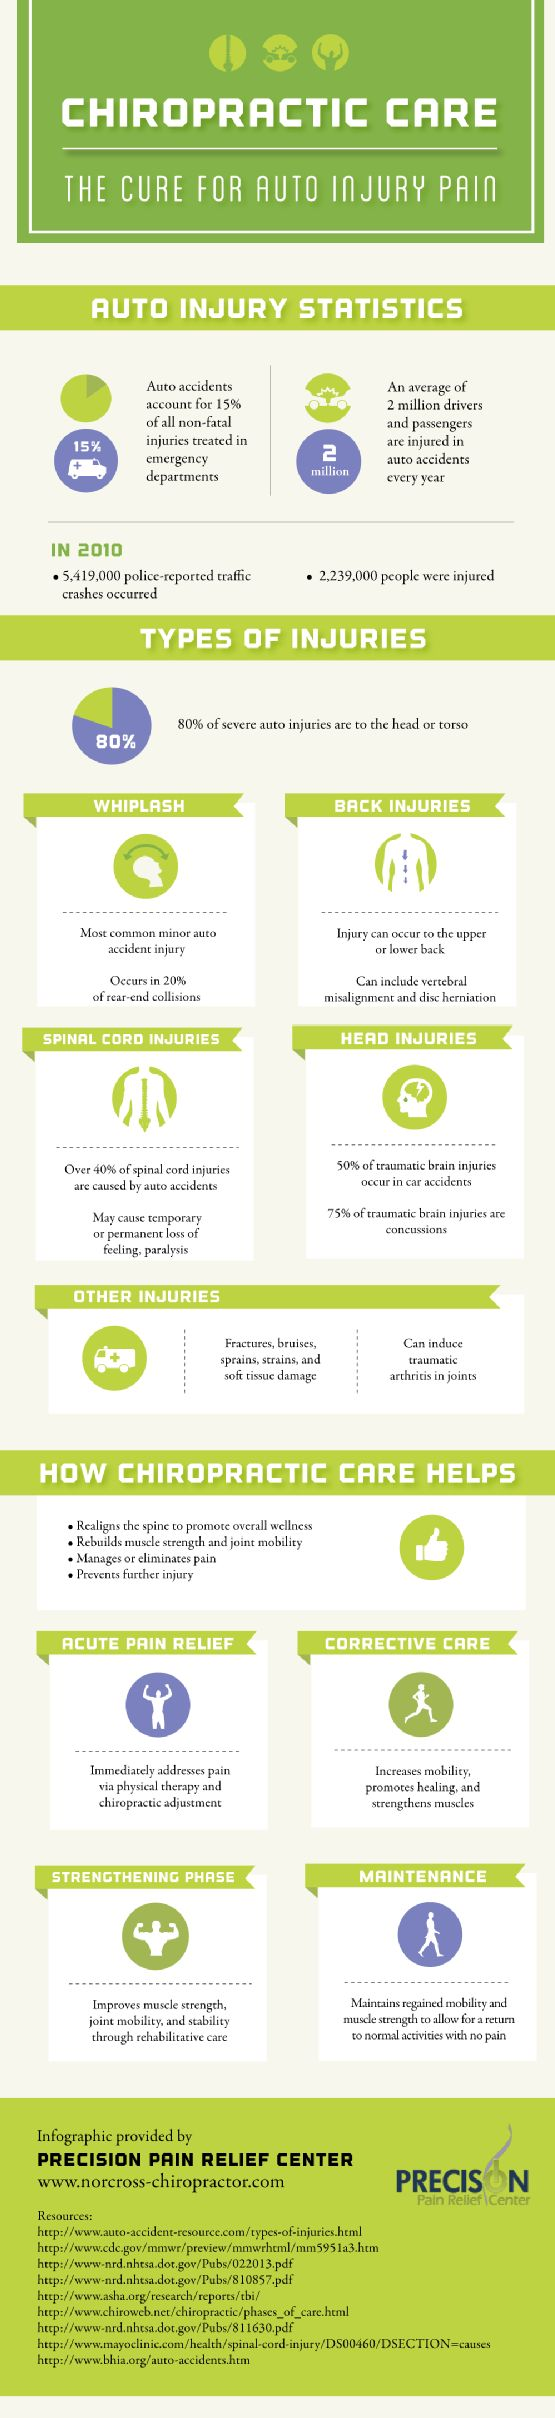 12 Best Auto Accidents And Chiropractic Images On Pinterest